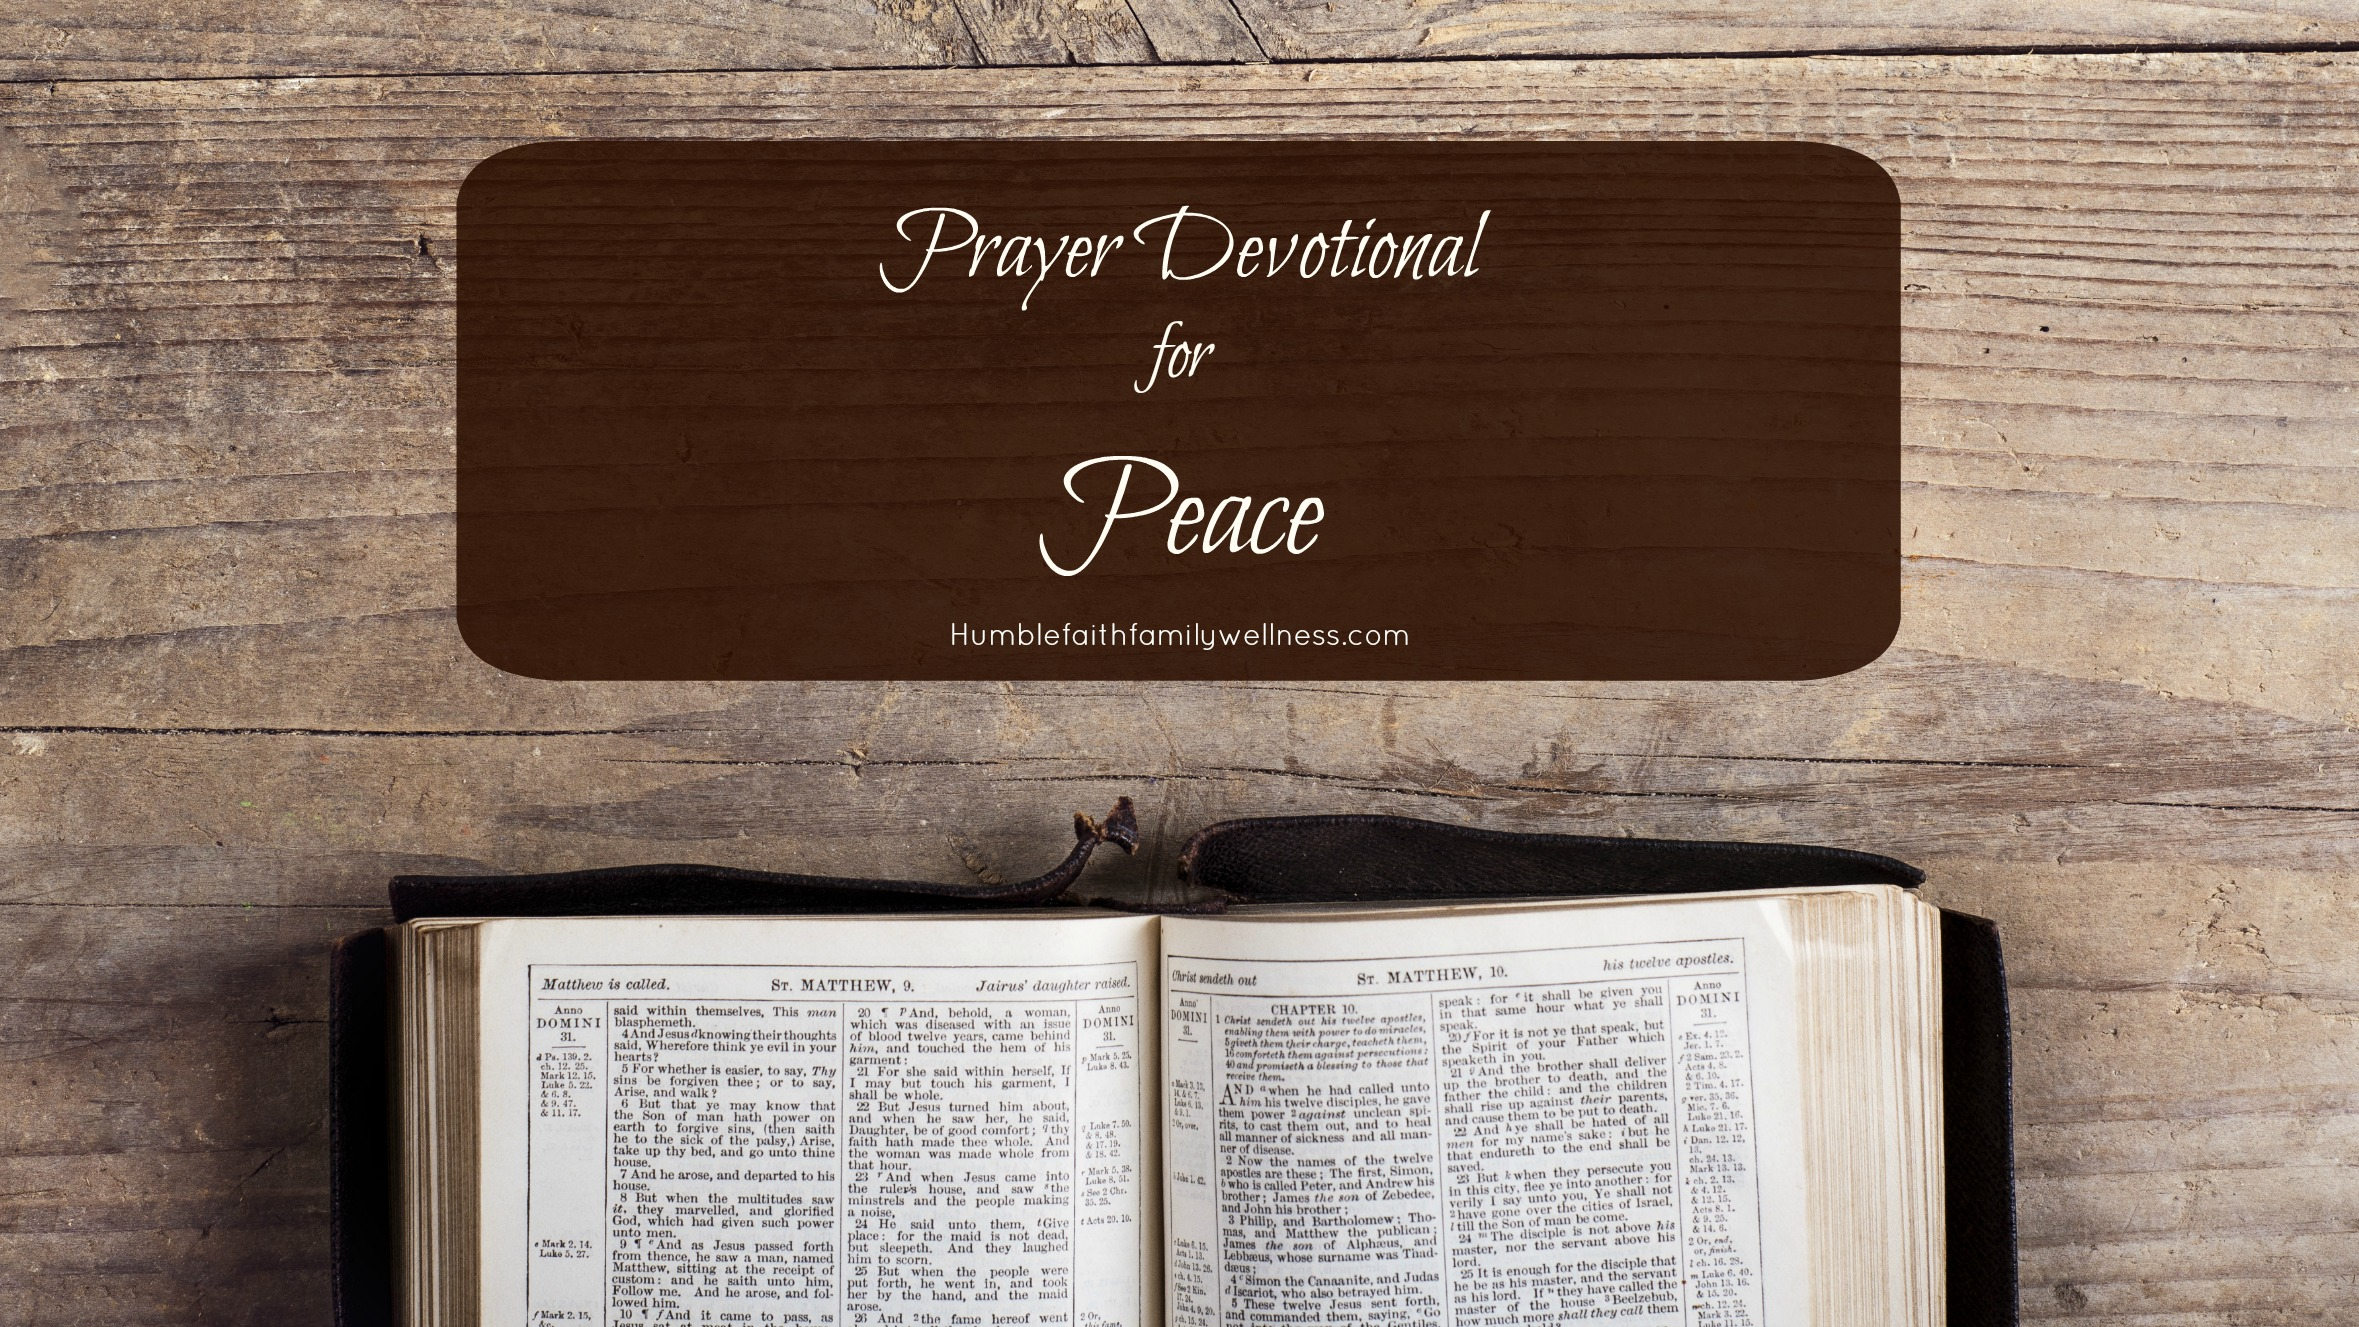 Peace, Prayer Devotional